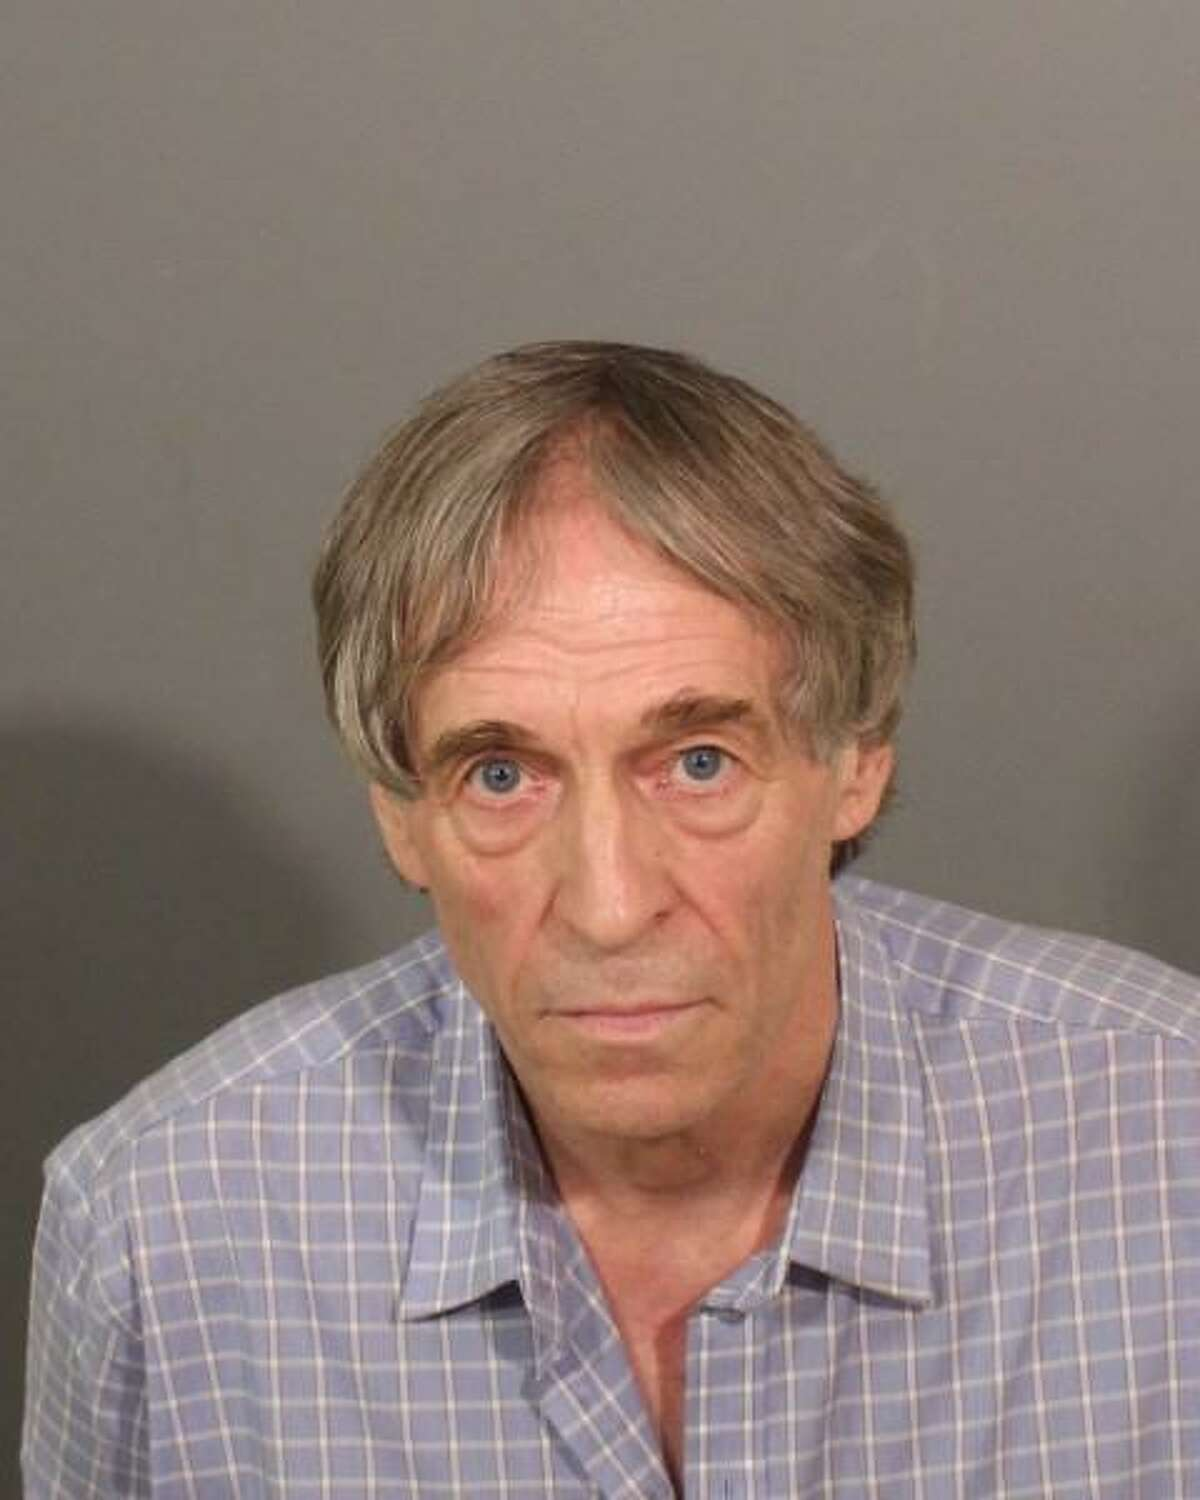 Glastonbury resident Bruce Bemer was charged with patronizing a trafficked person.